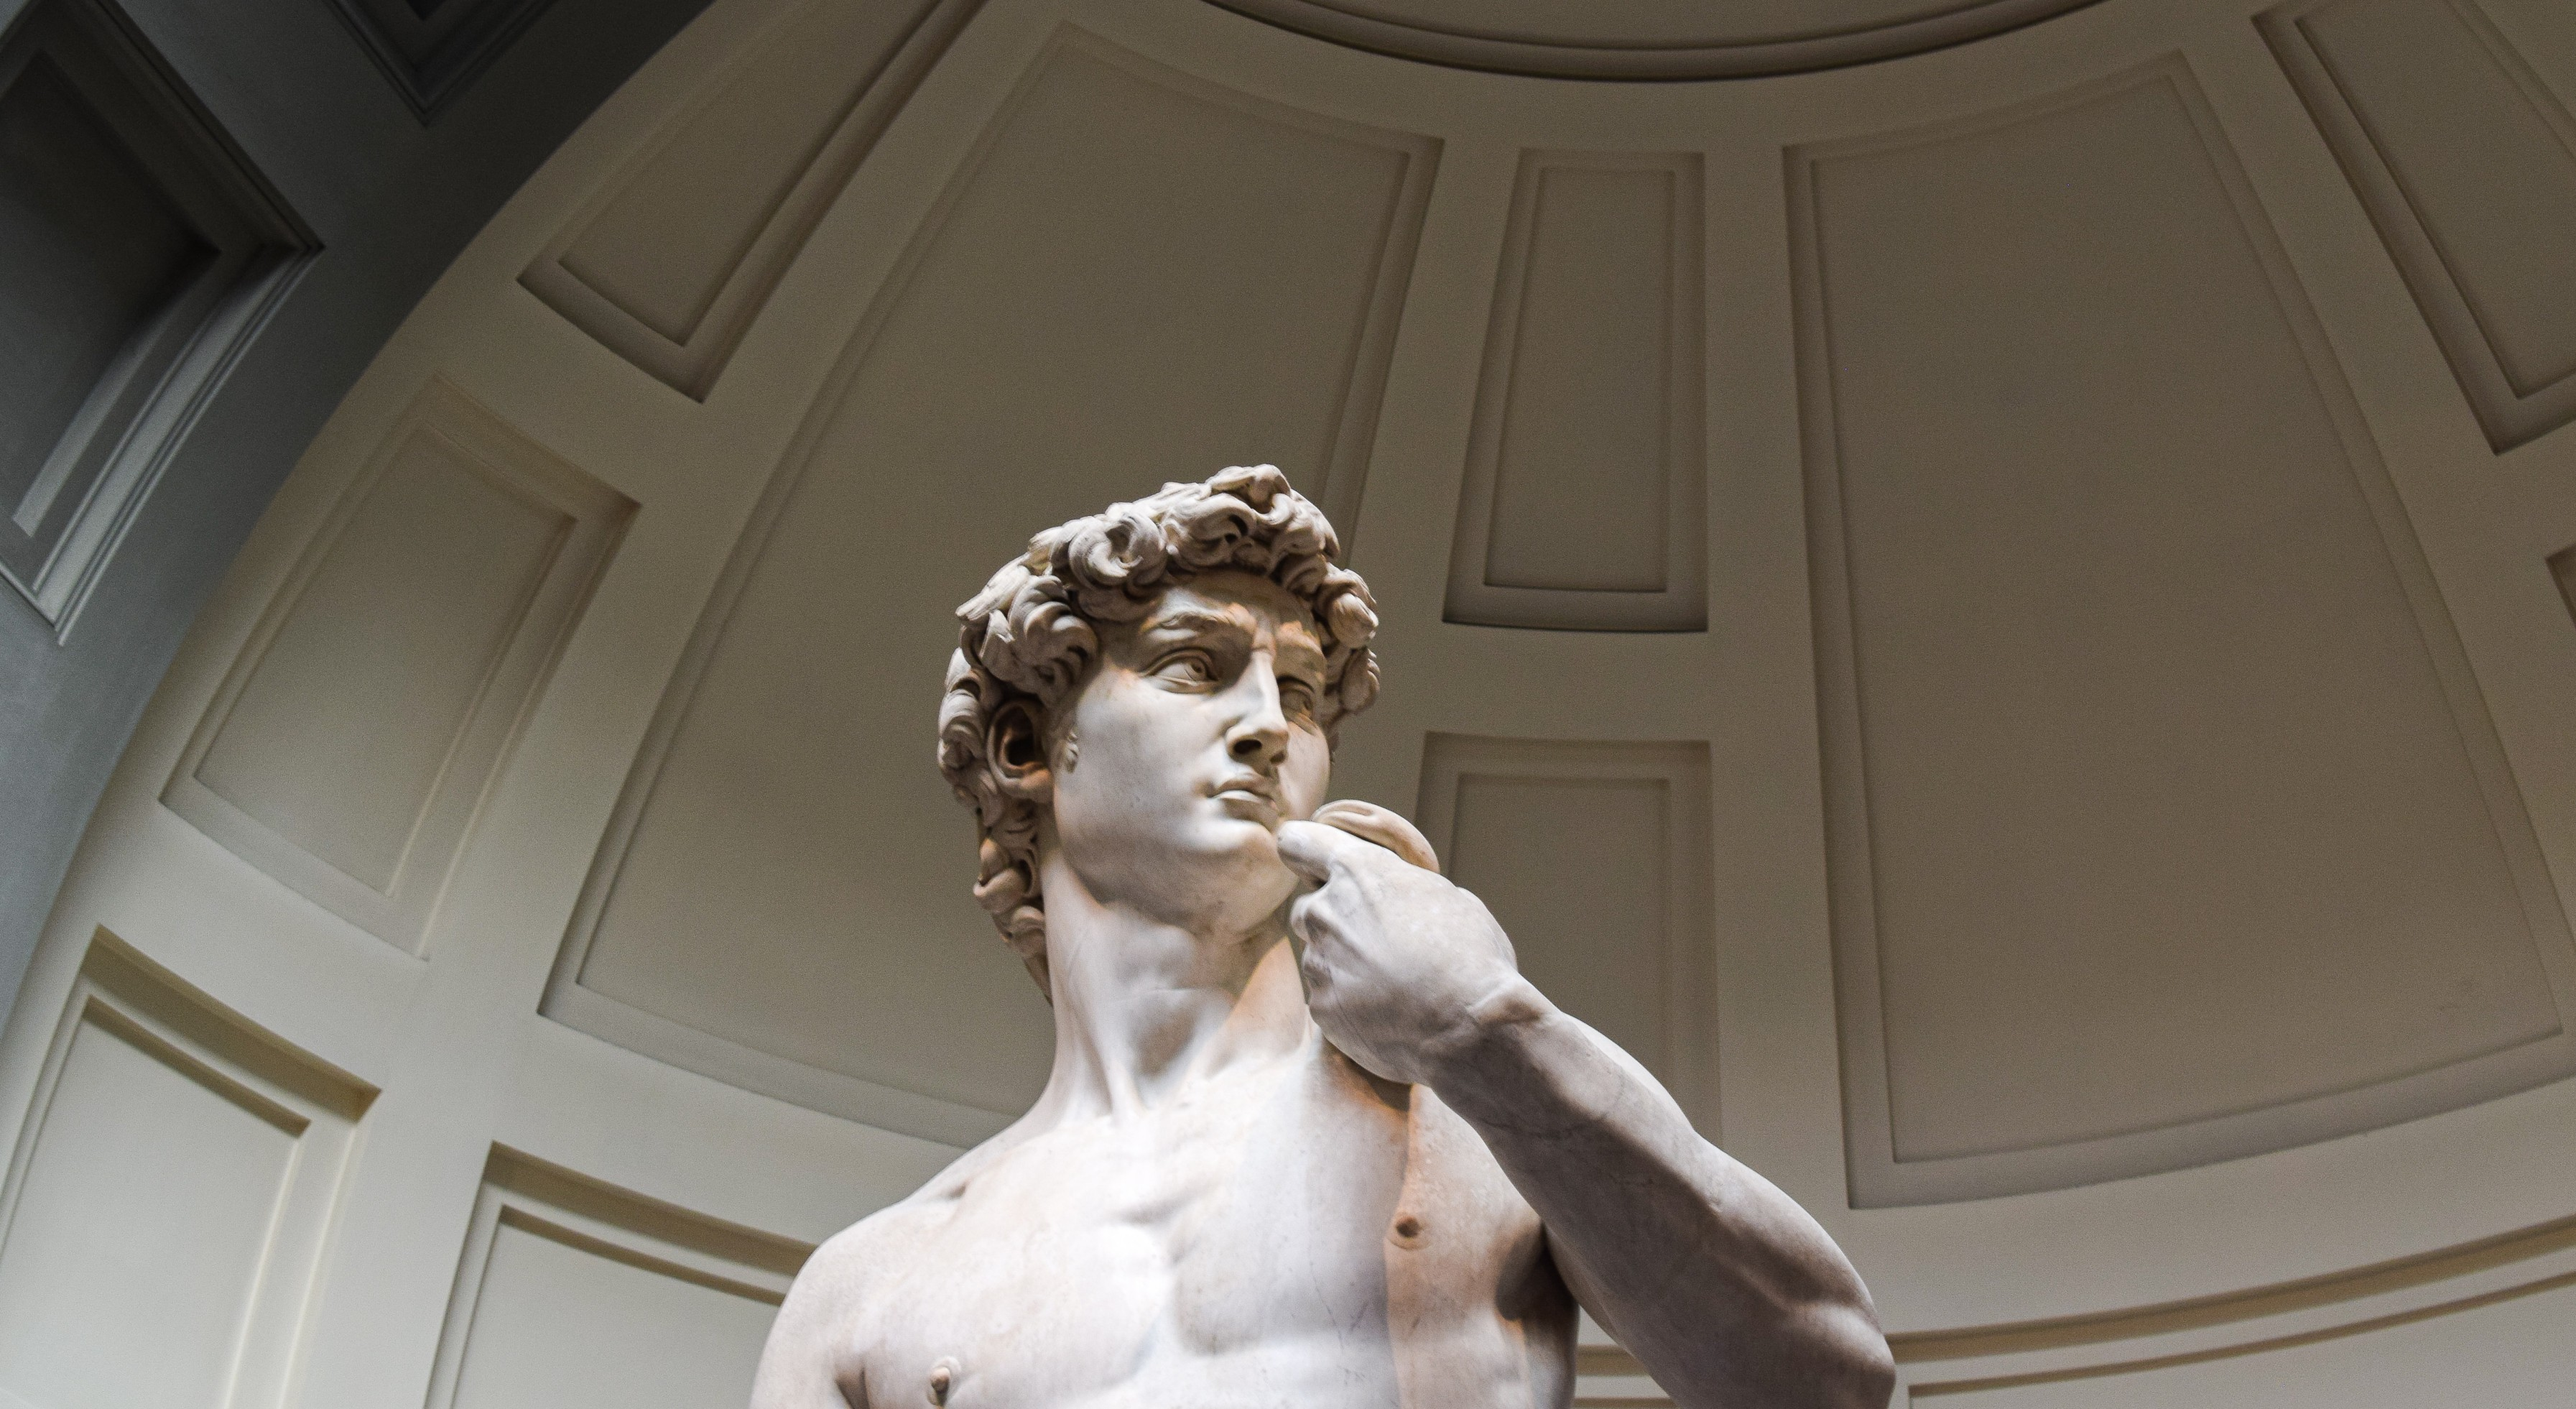 See the artworks of Michelangelo